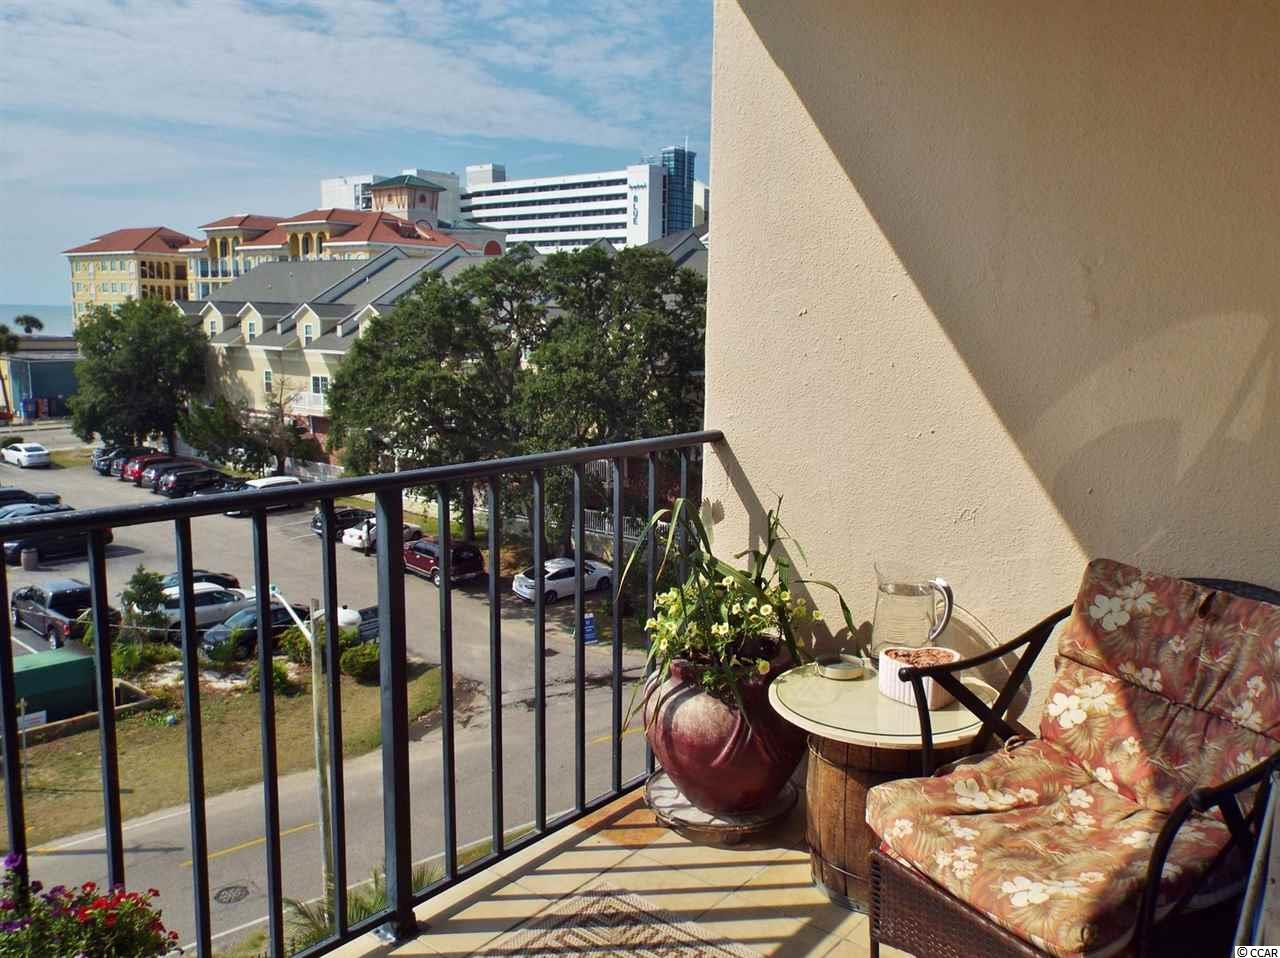 Holiday Tower  condo now for sale